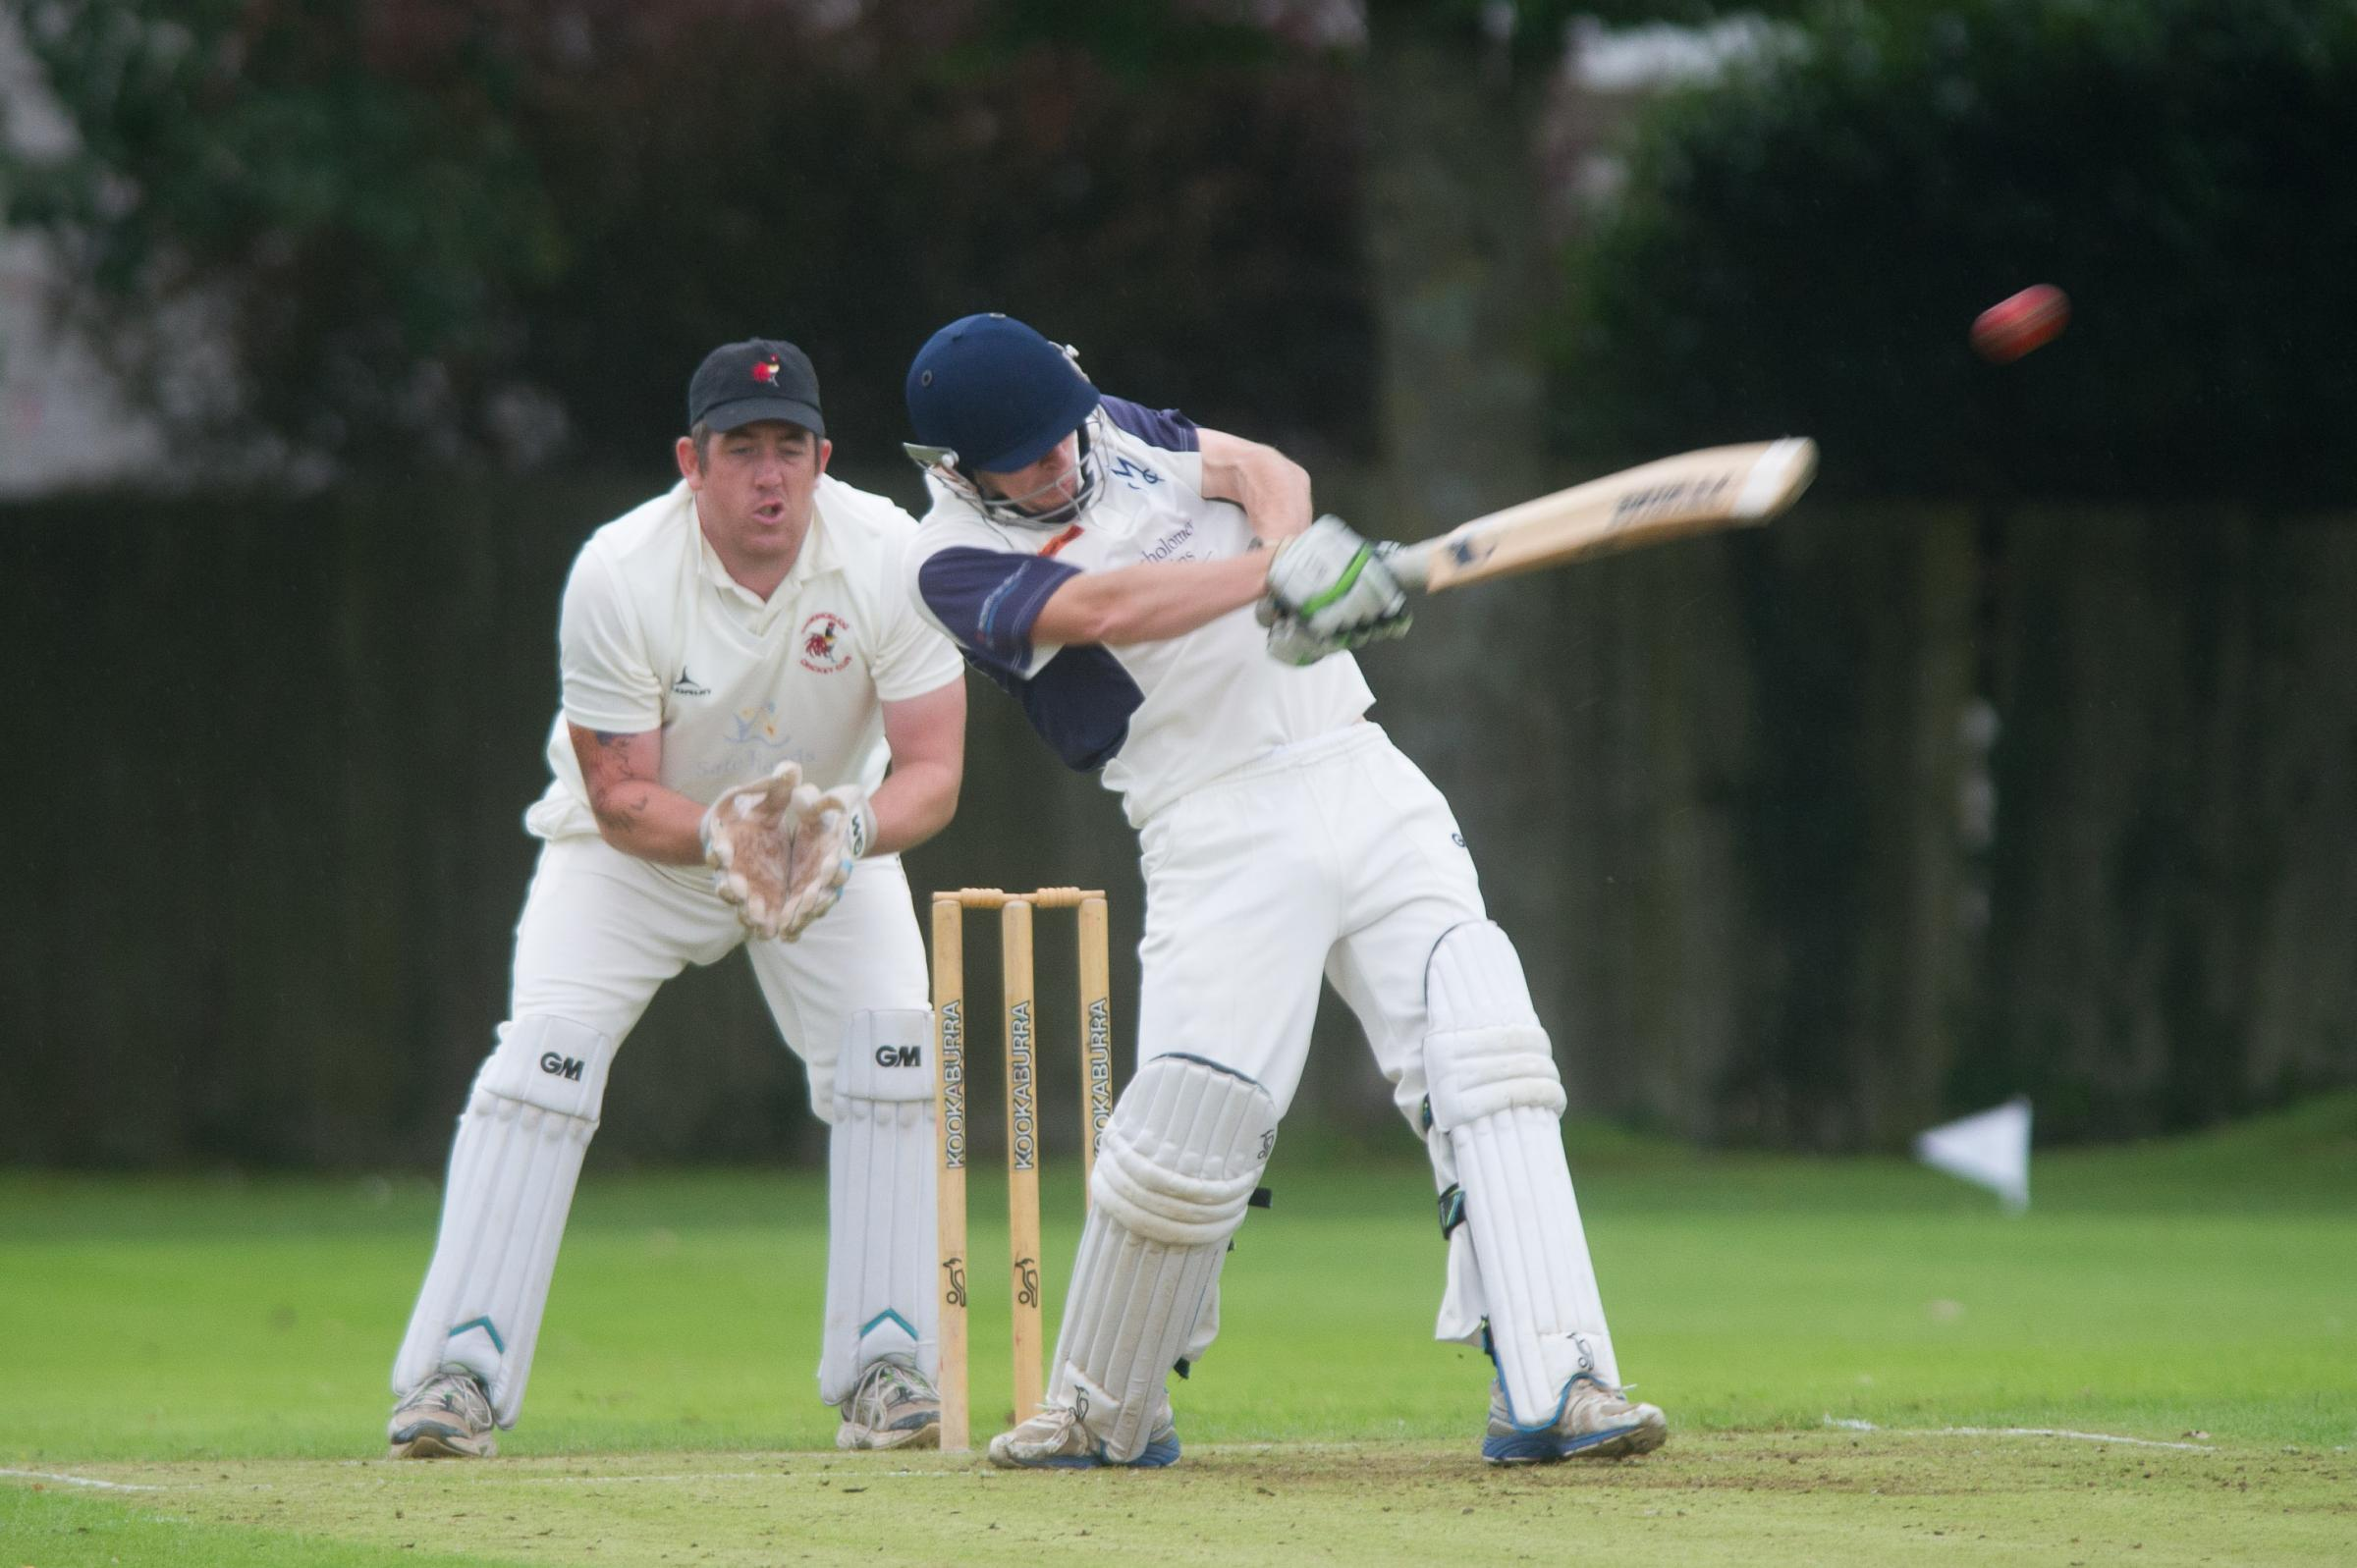 PROMOTION CHANCE: Malpas batsman Lewis Morgan in action earlier this season